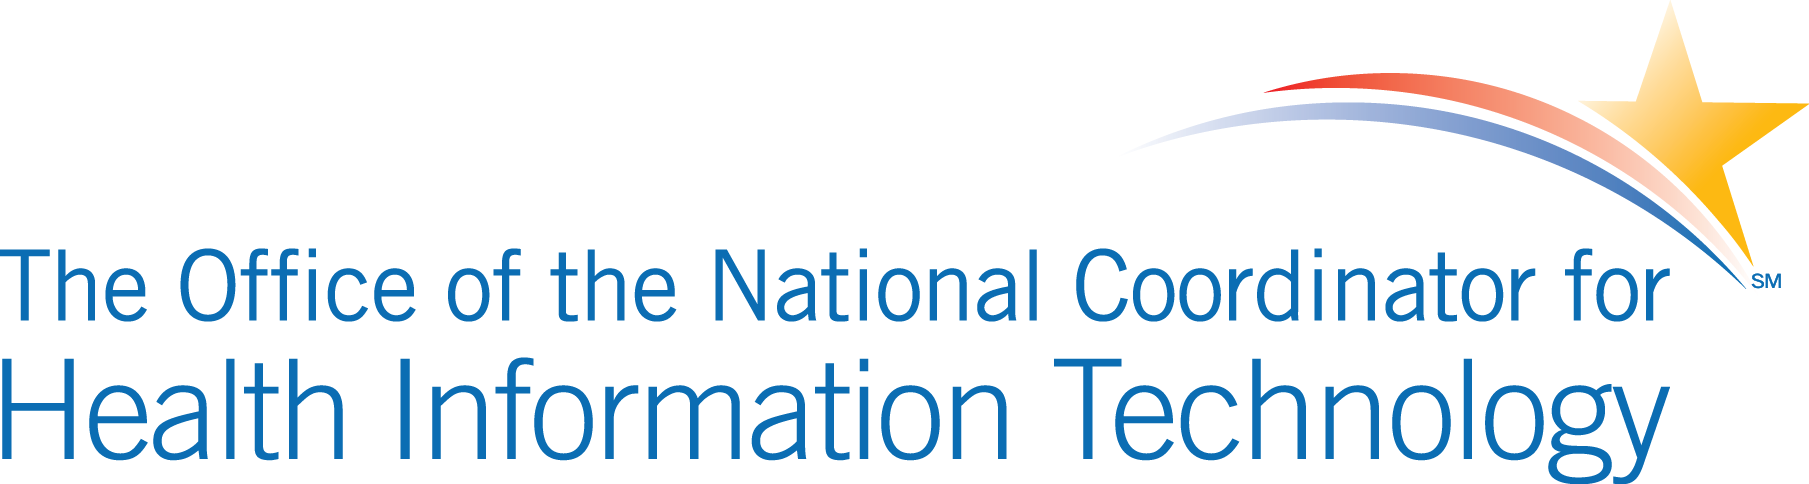 small ONC logo